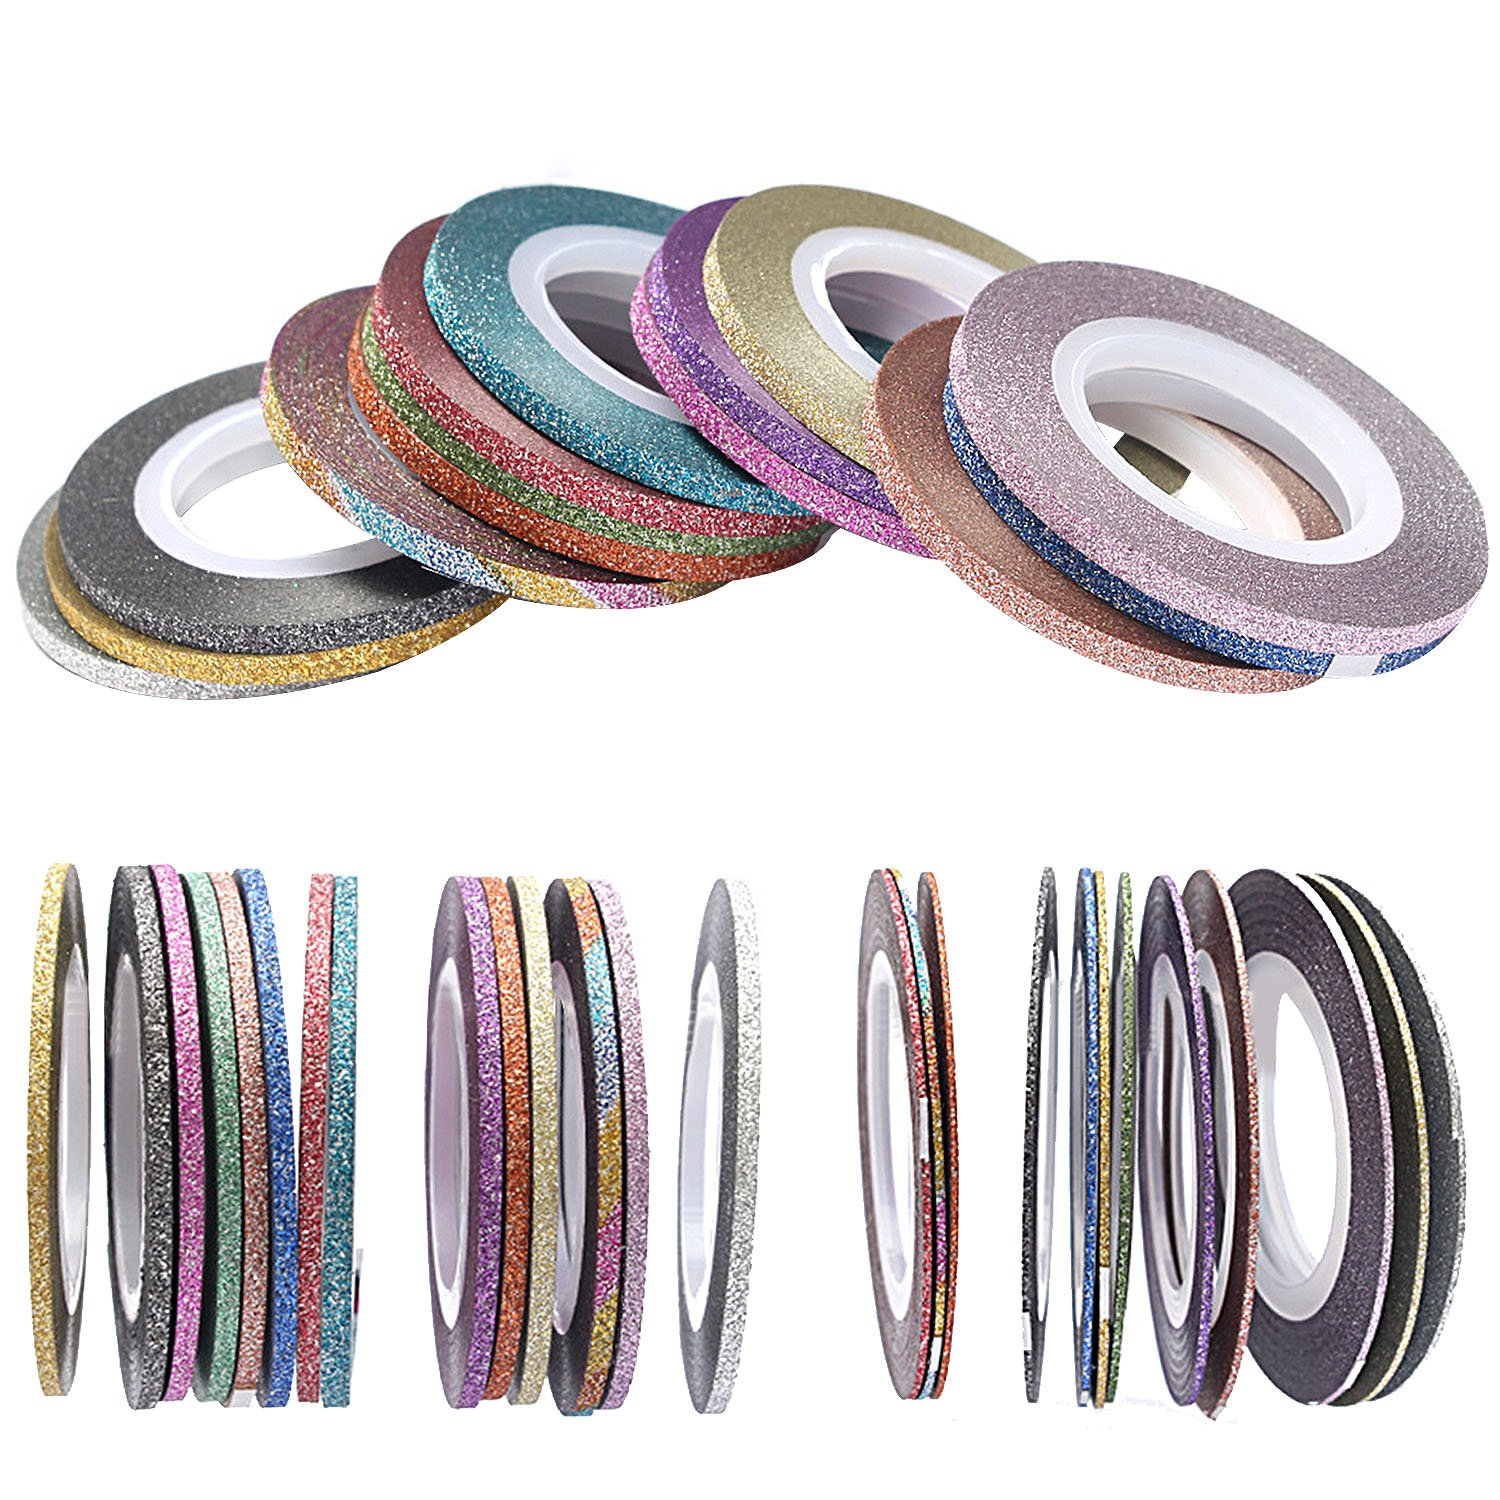 Elisona-42 Rolls Colorful Self-adhesive Nails Decoration Line Nail Art Striping Tape Line Sticker Decoration Accessories